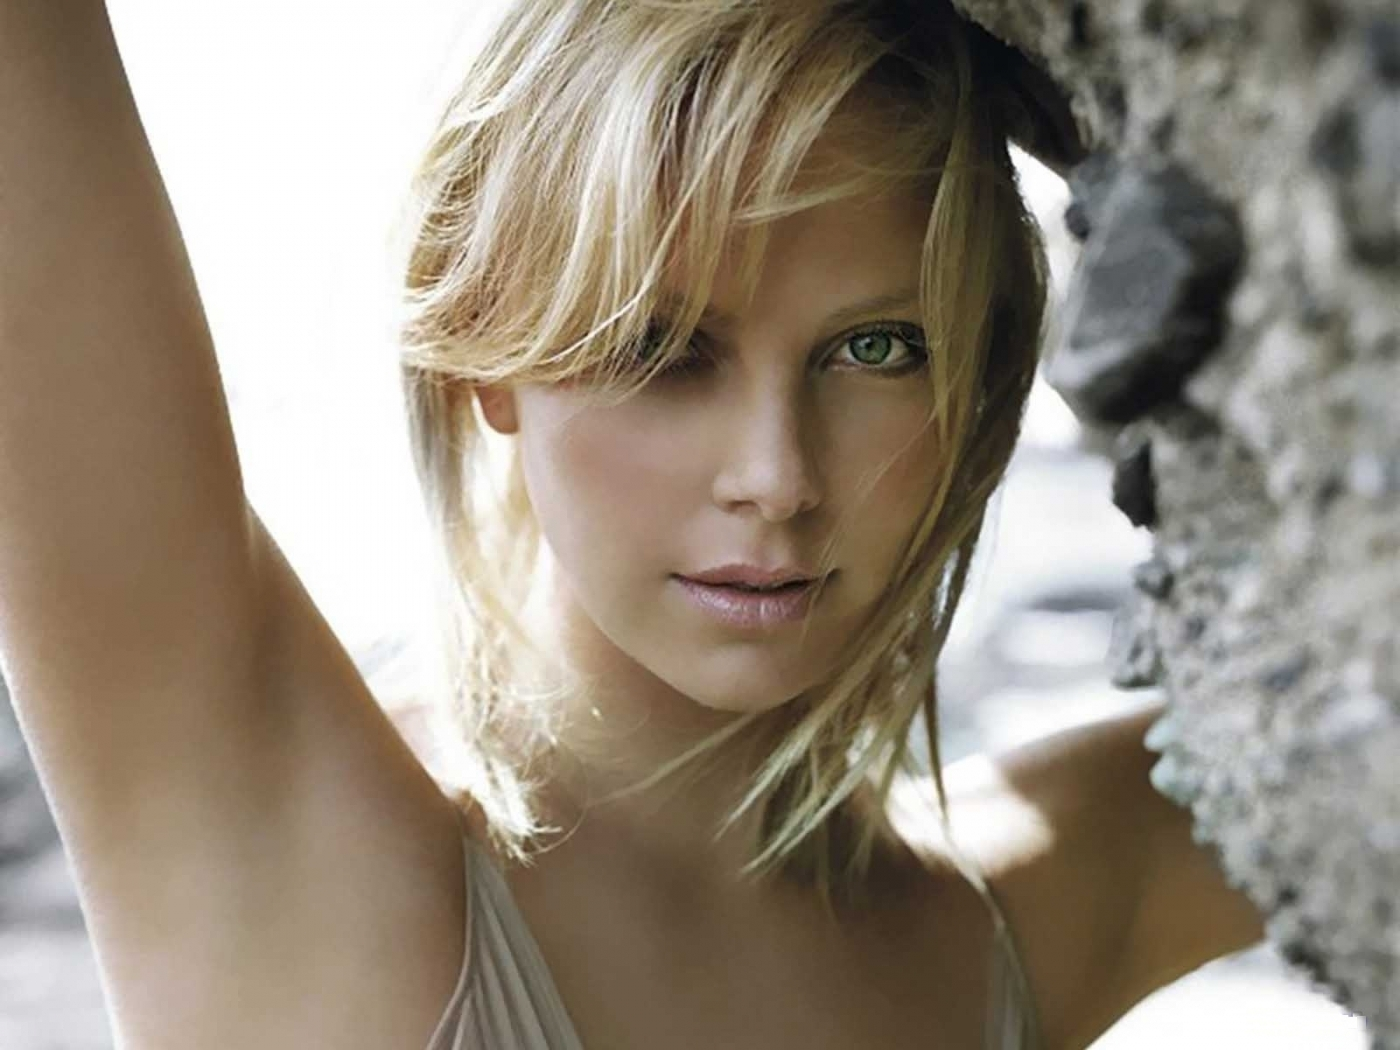 41392 download wallpaper Cinema, People, Girls, Charlize Theron screensavers and pictures for free